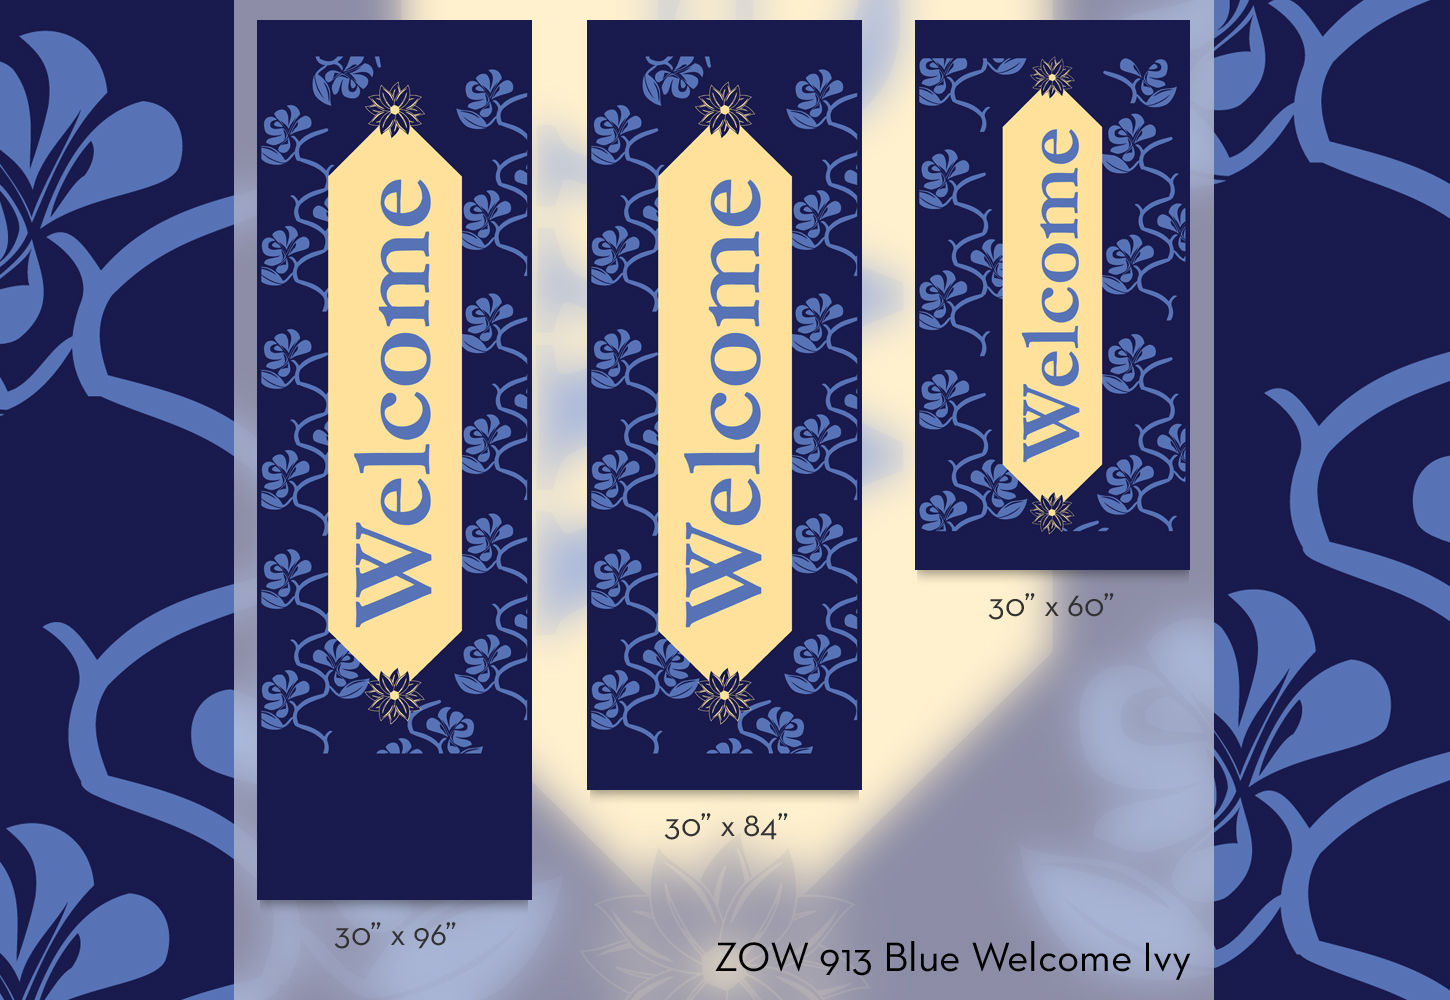 ZOW 913B Blue Welcome Ivy